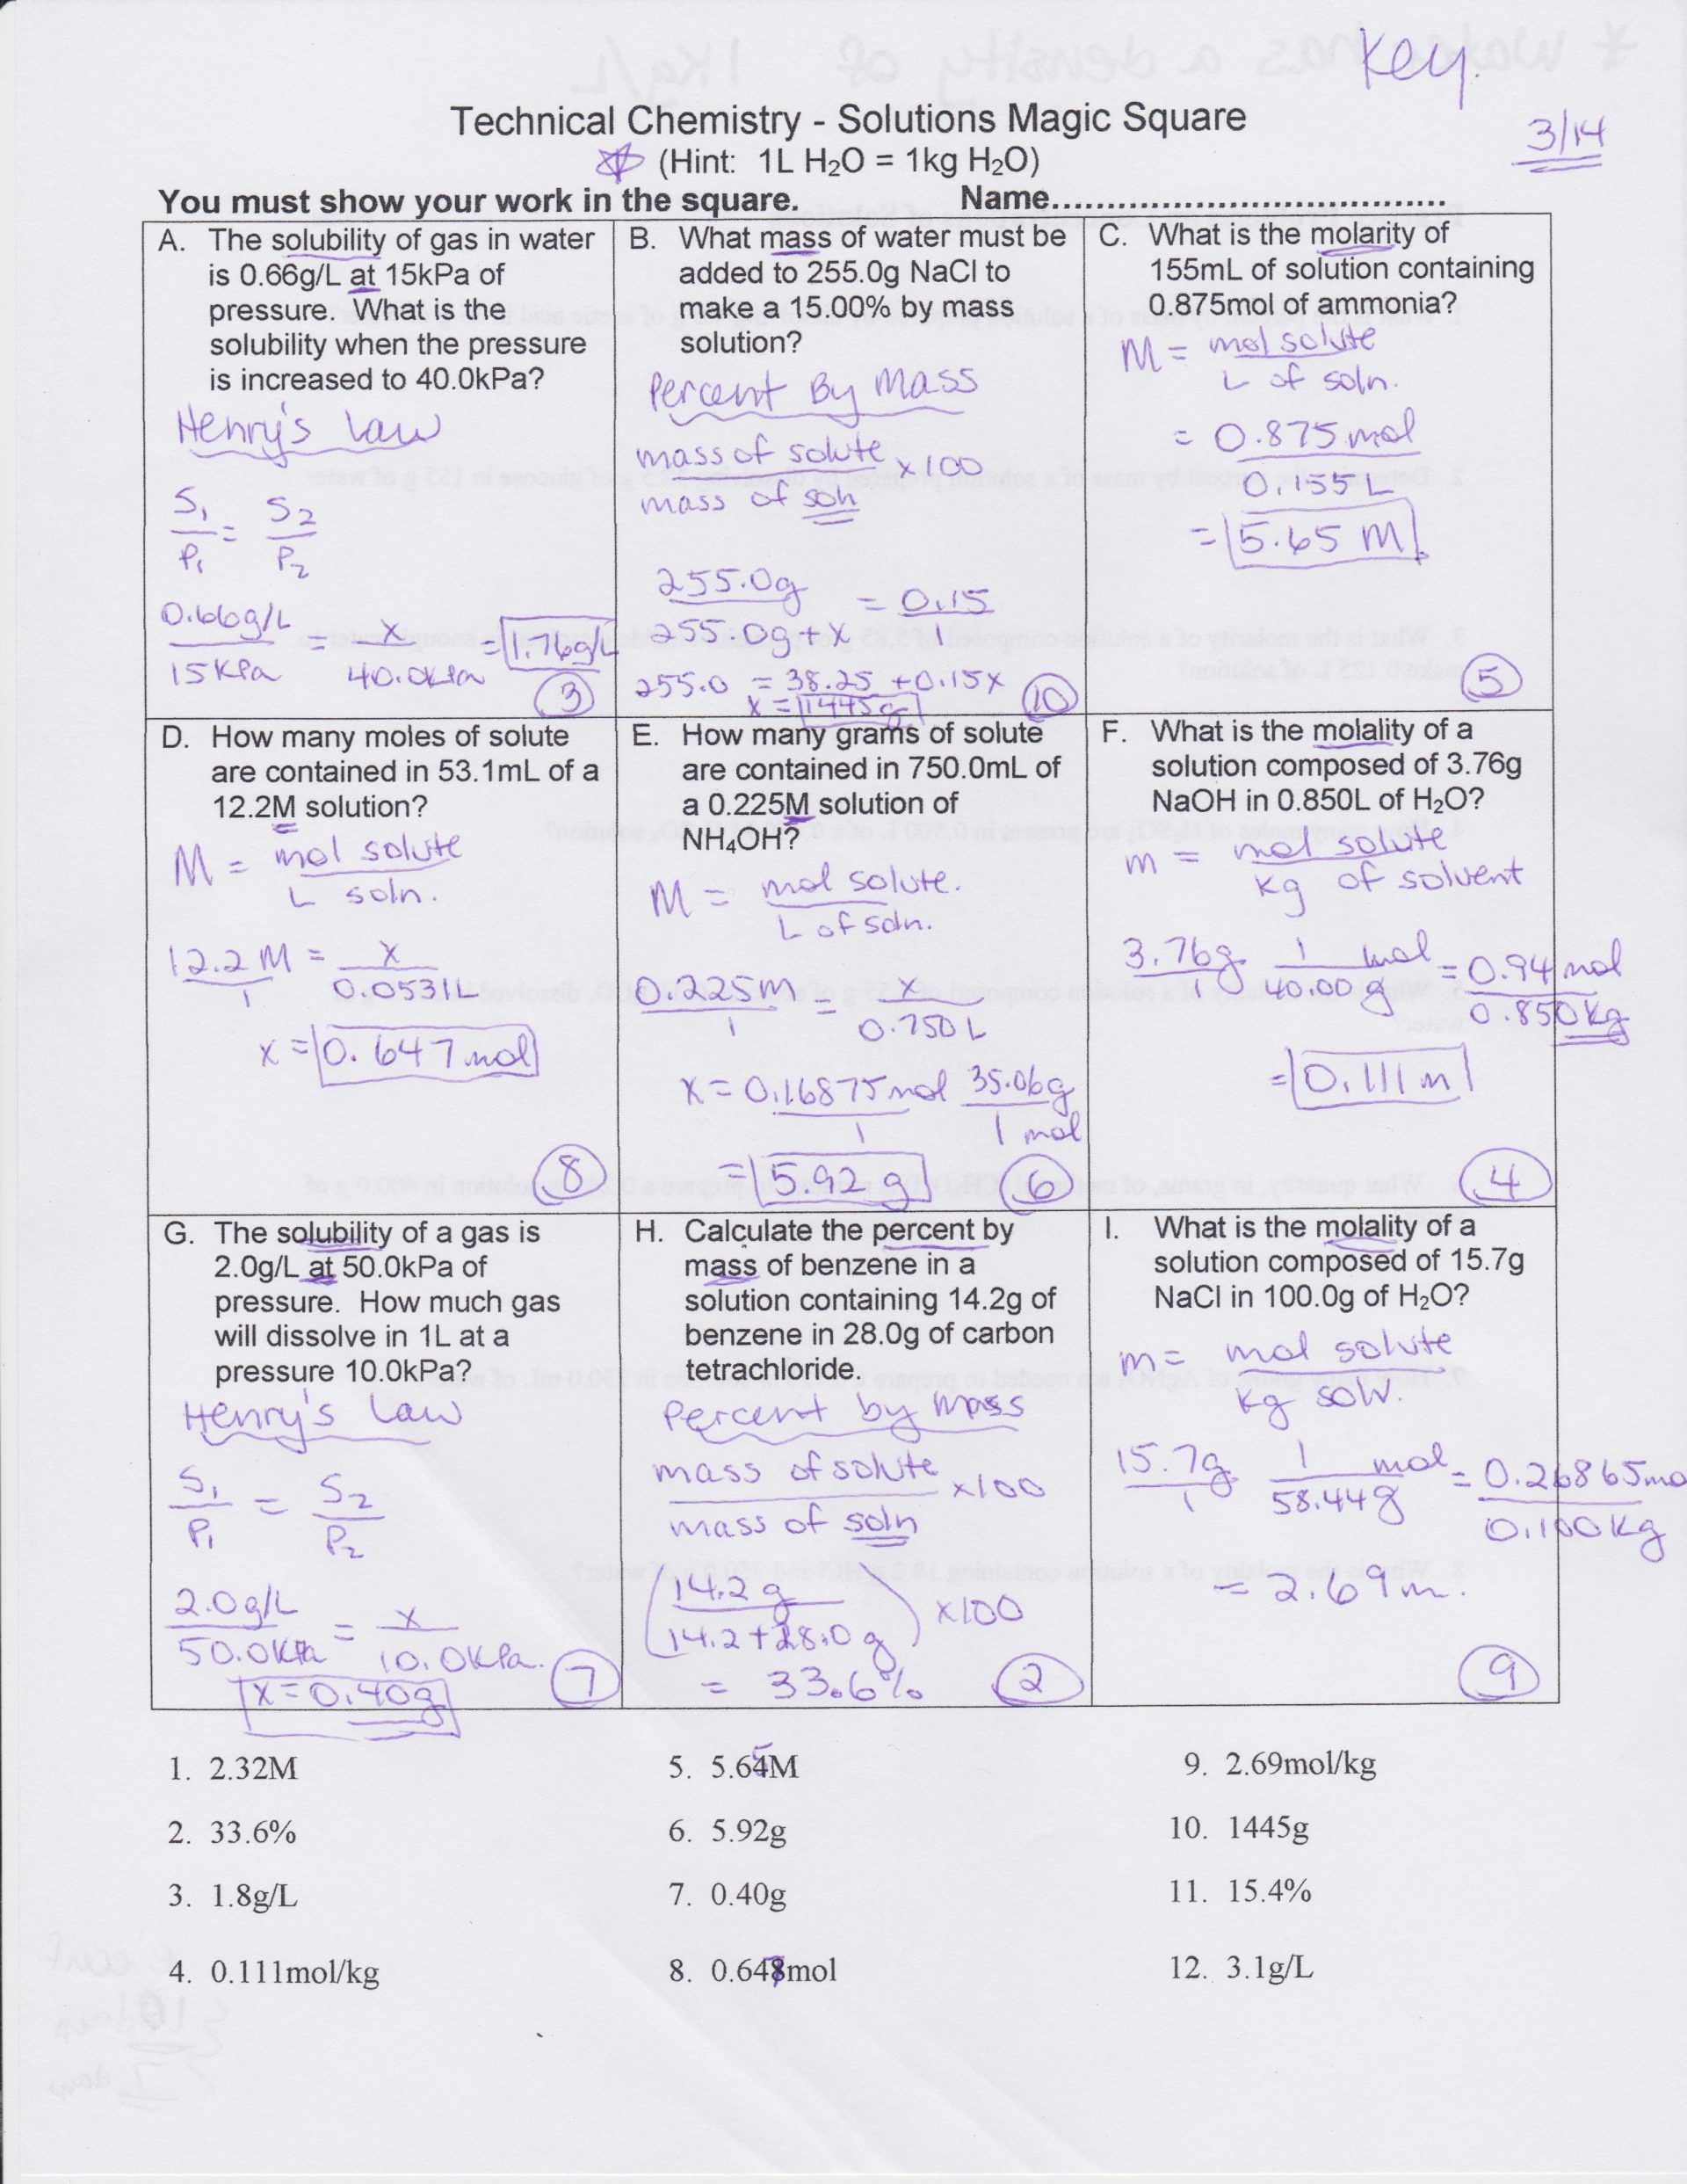 Geometry Reflection Worksheet or Magicuare 3×3 Worksheet Math Worksheets Accounting